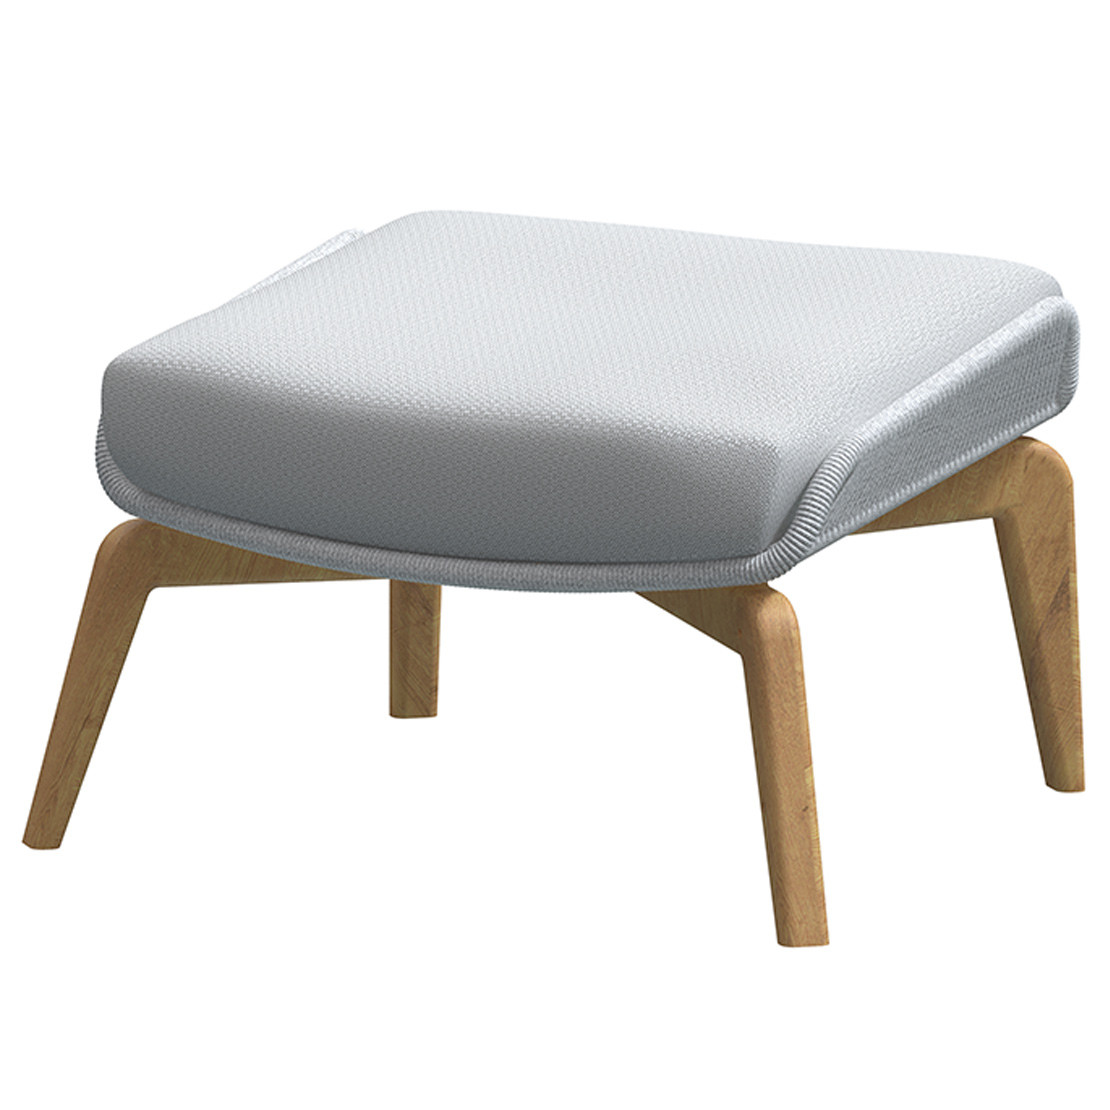 Carthago teak footstool Frozen with cushion